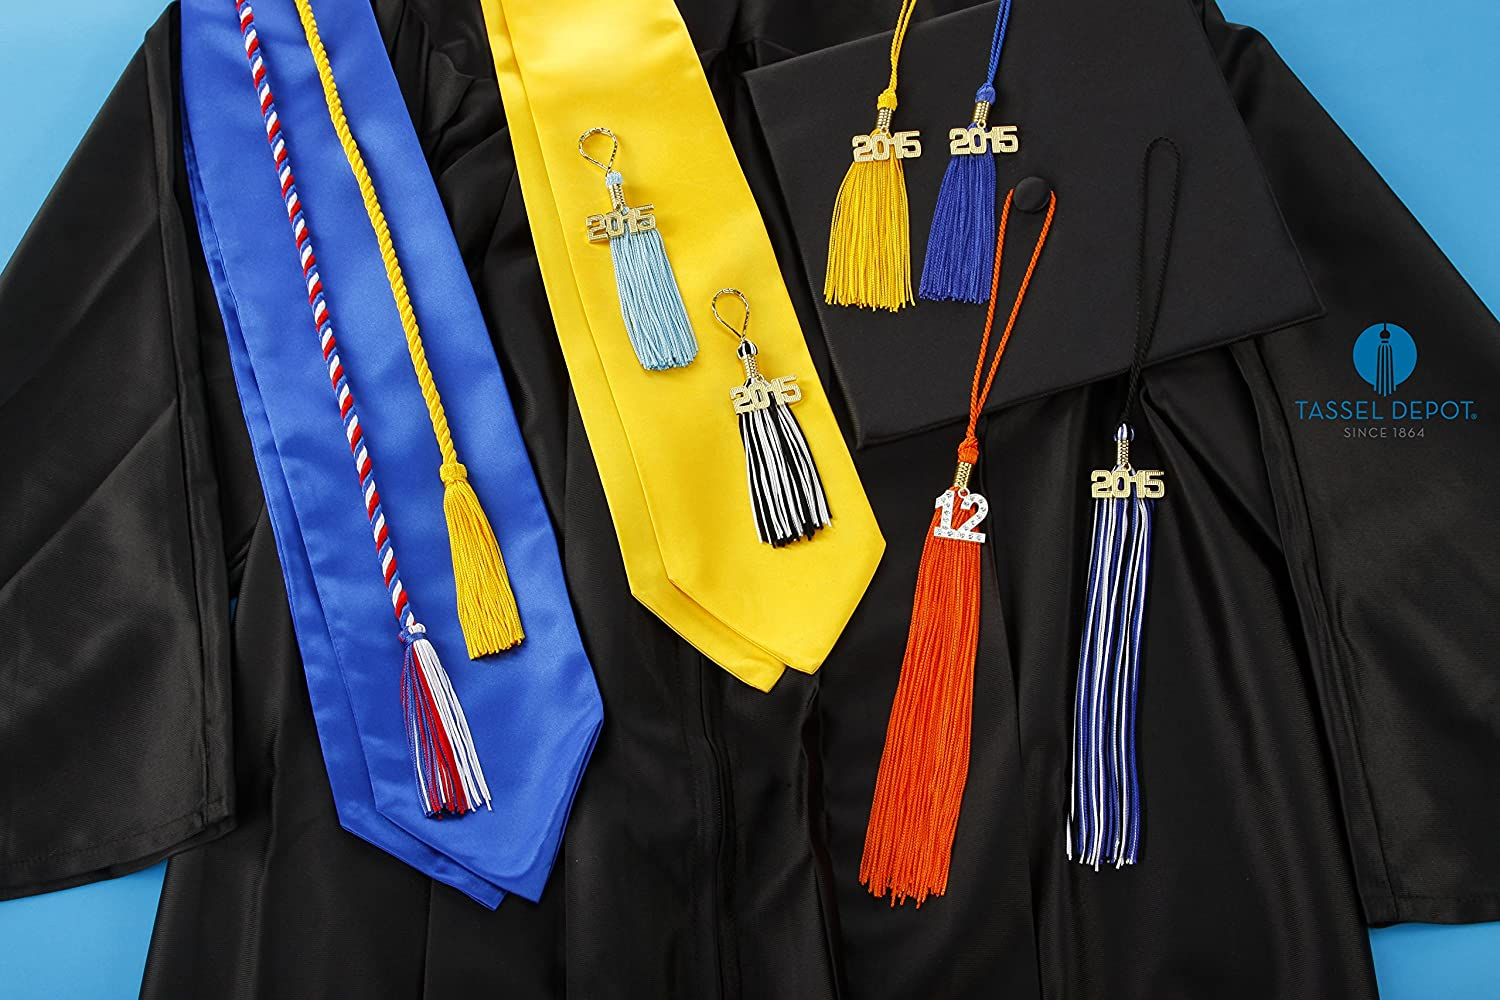 Amazon.com: HONOR CORD GOLD - TASSEL DEPOT BRAND - MADE IN USA